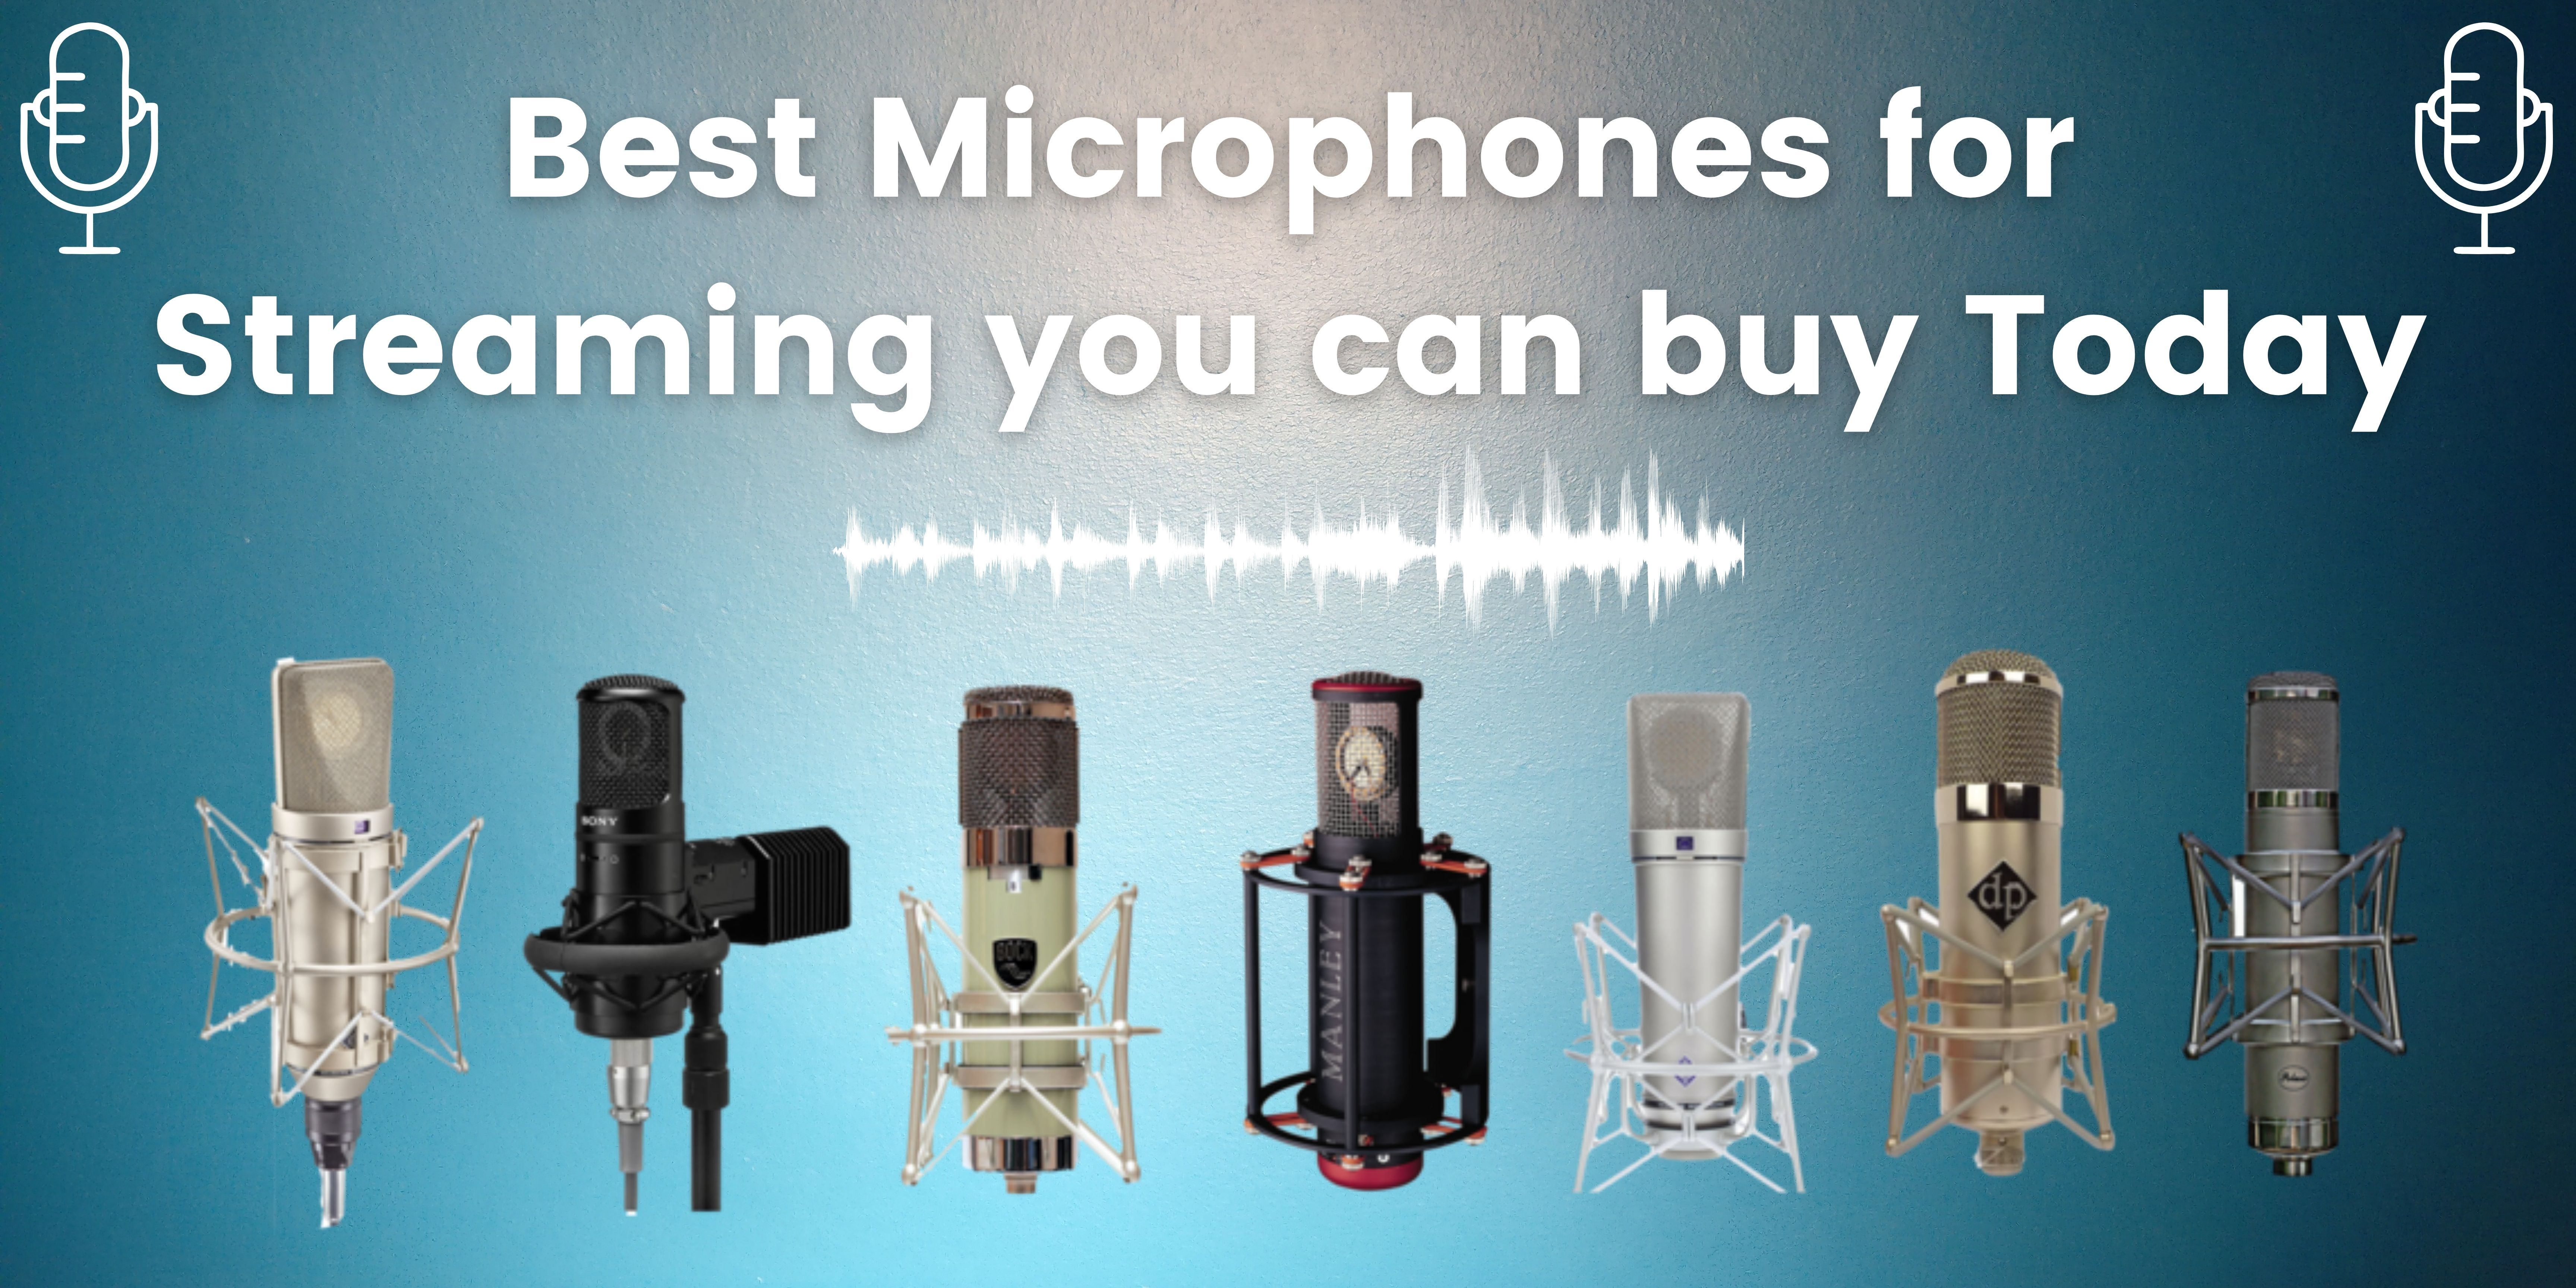 3 Best Microphones for Streaming you can buy Today